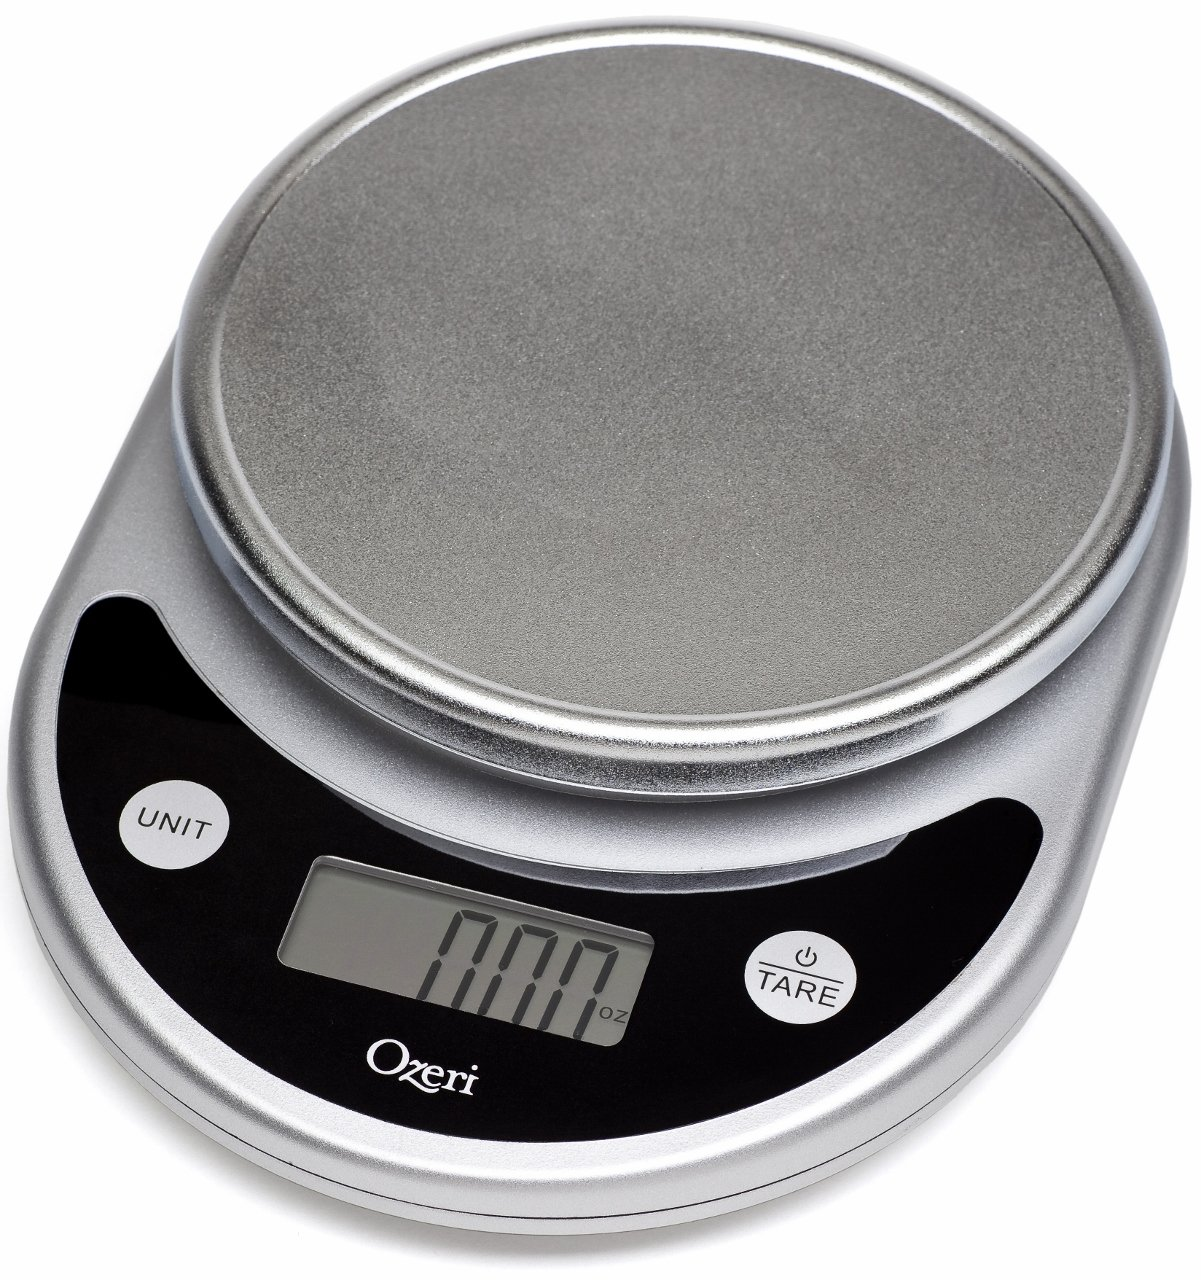 Ozeri Pronto Digital Multifunction Kitchen Food Scale